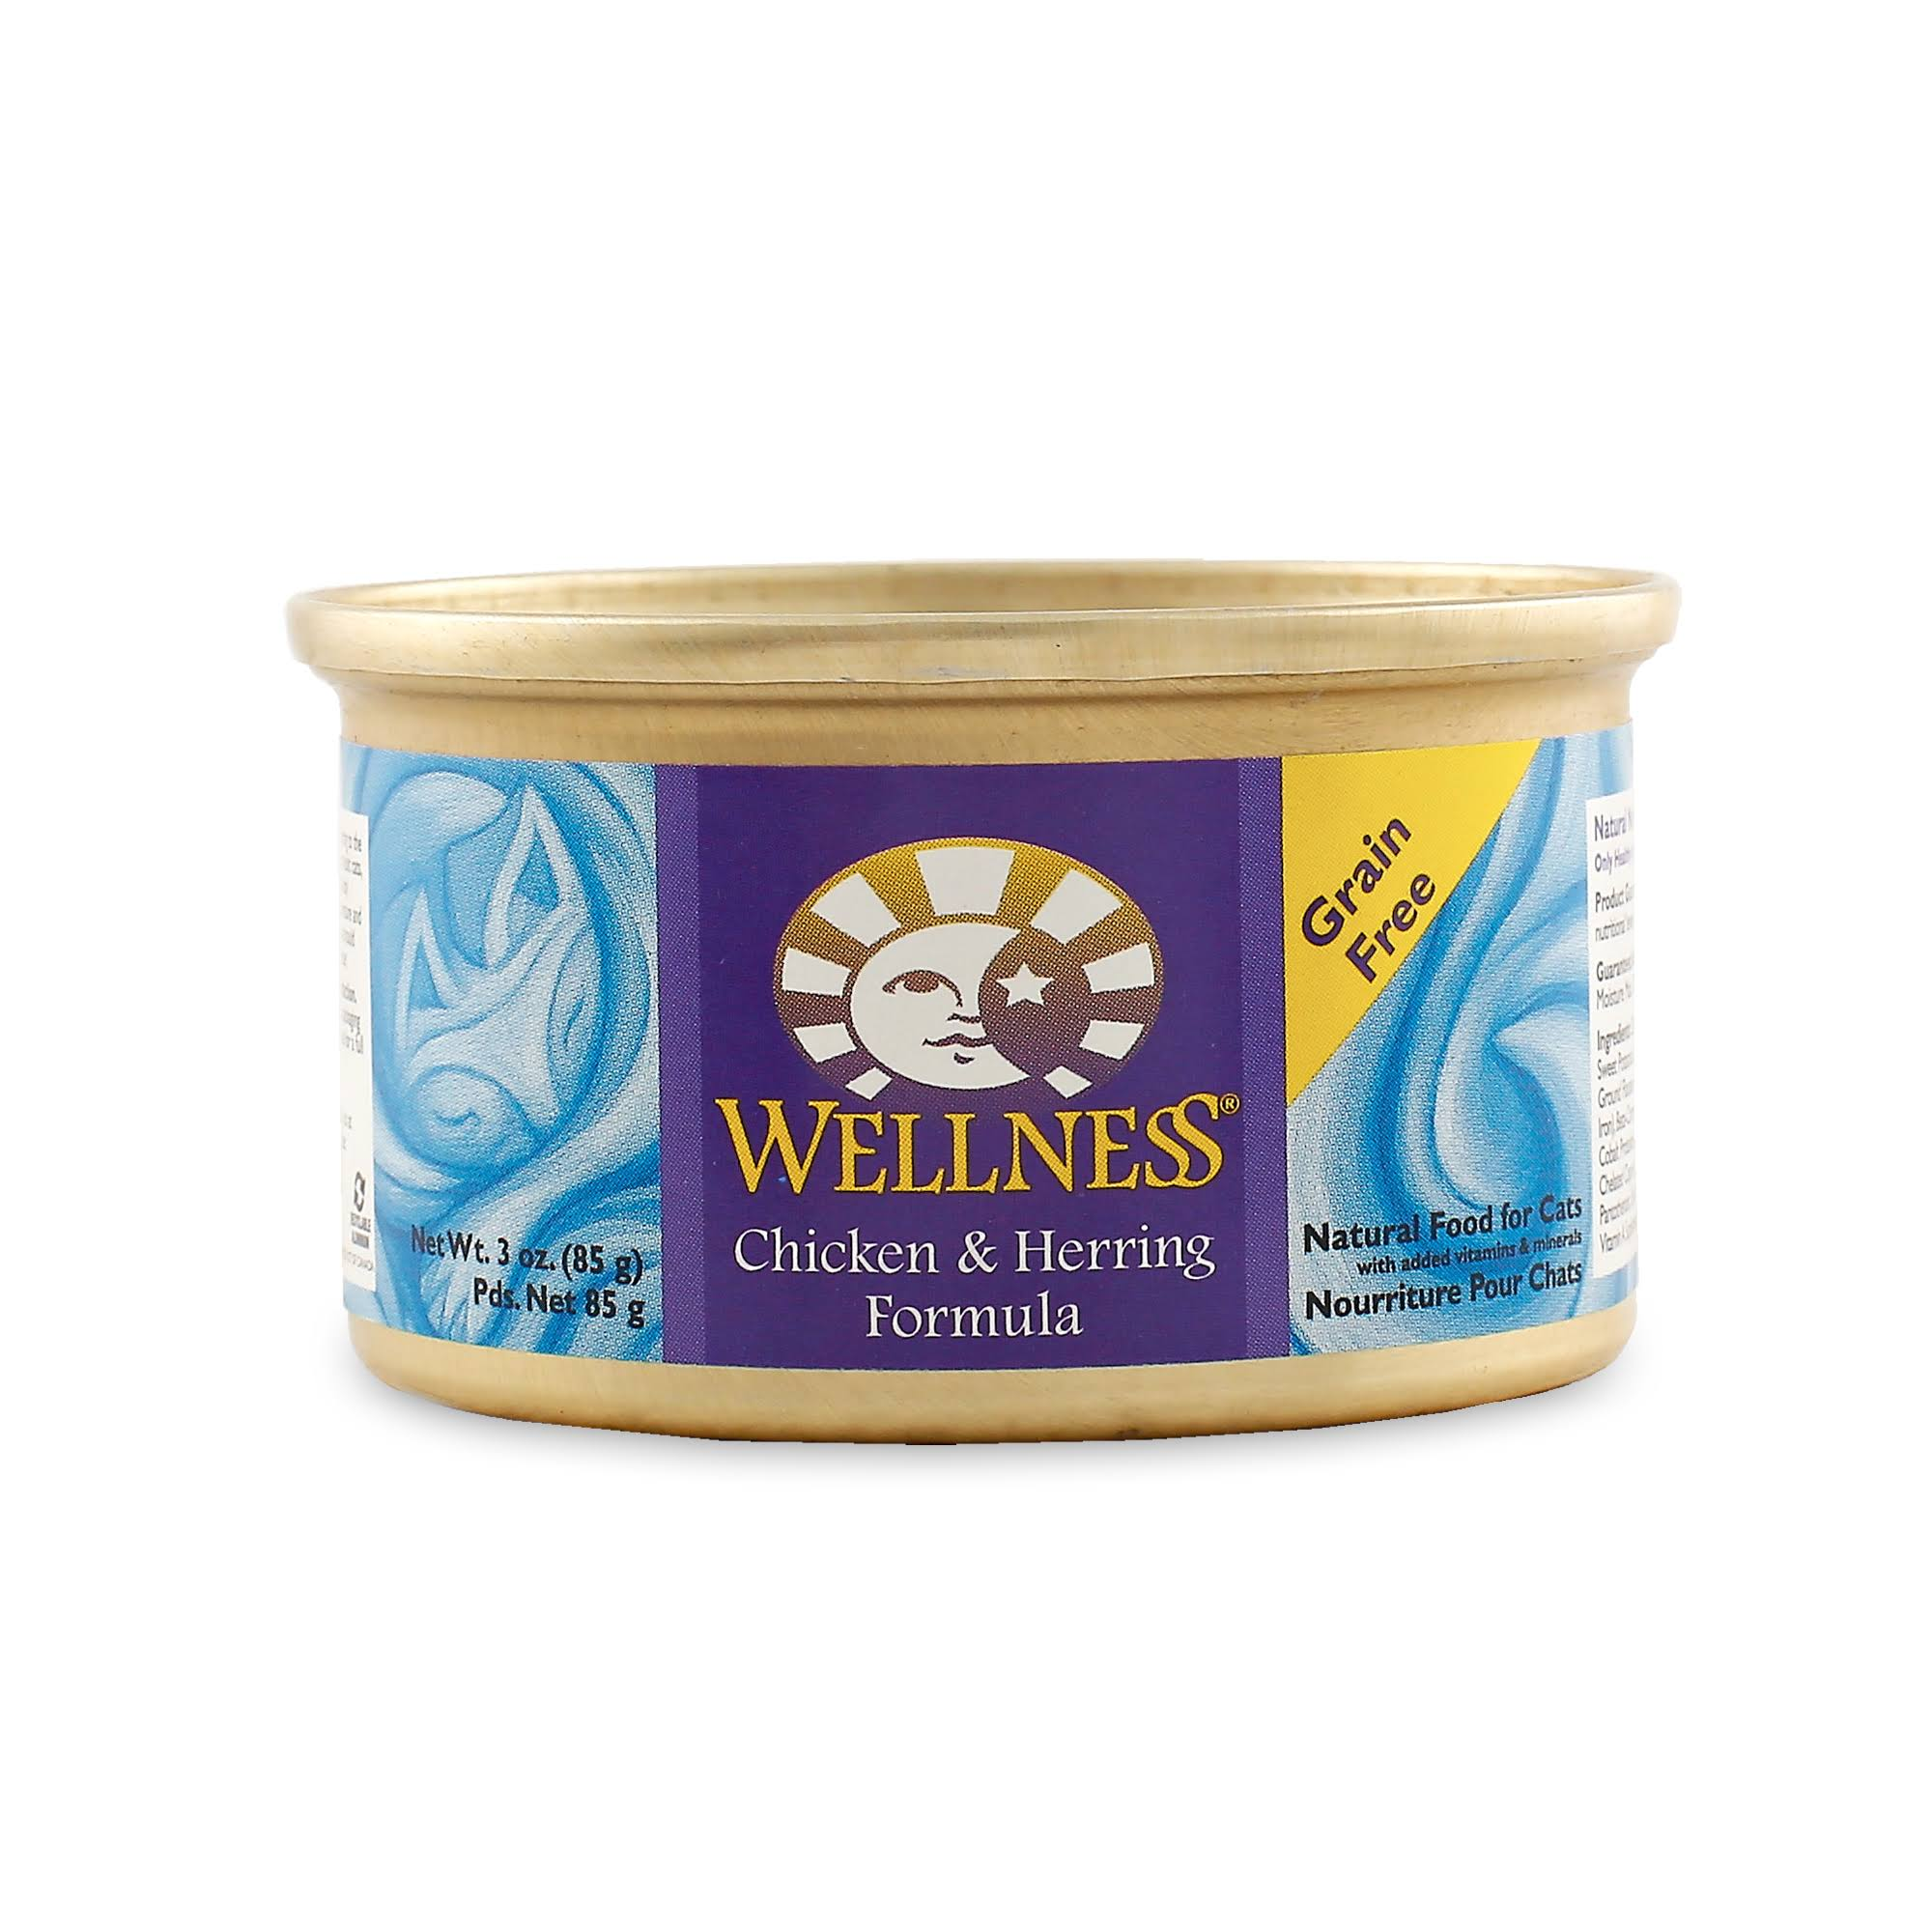 Wellness Chicken & Herring Formula Cat Food